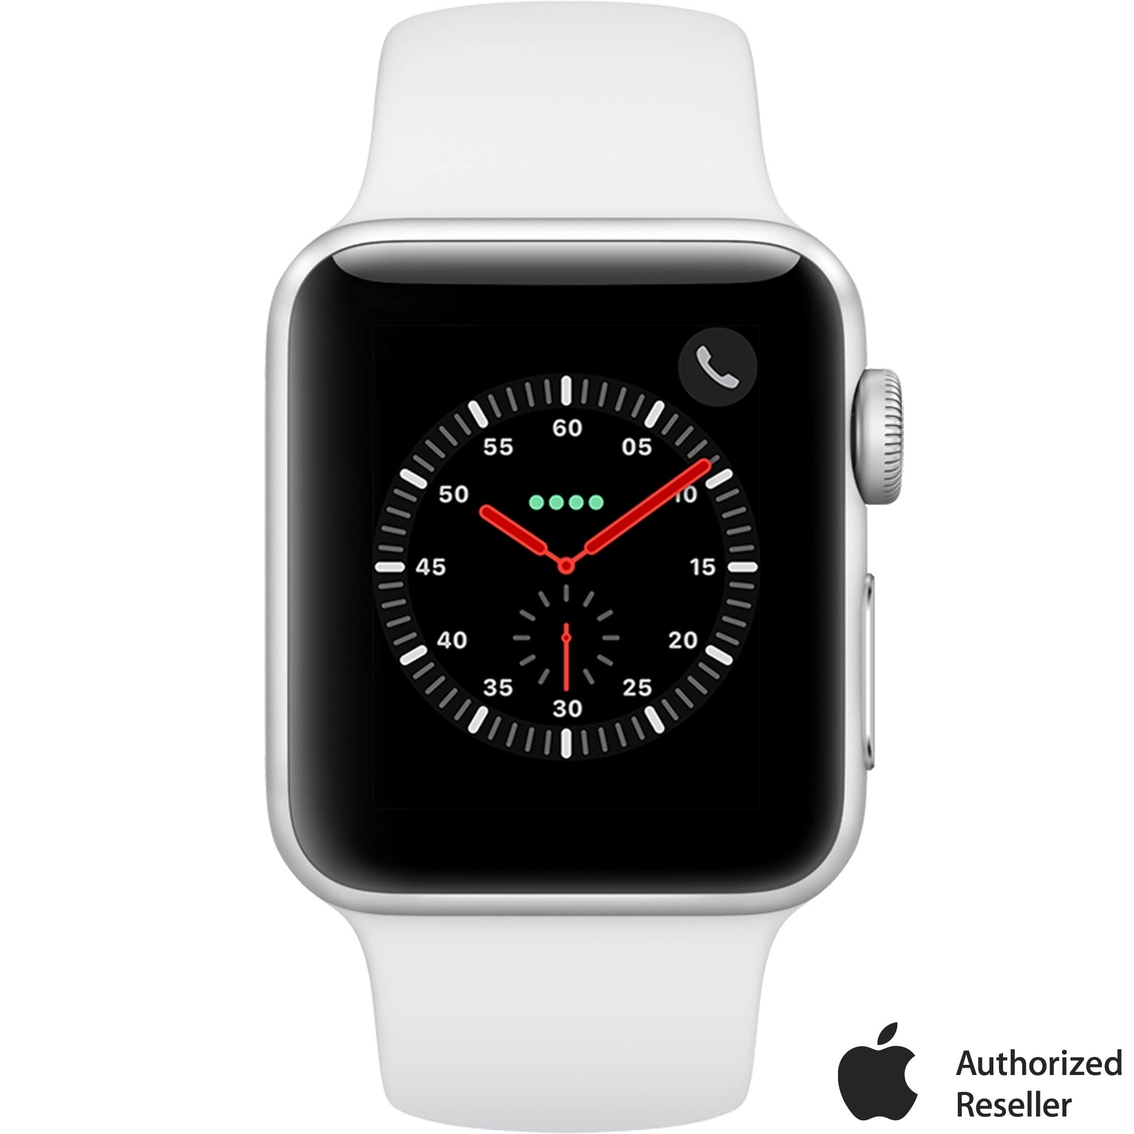 c5e19377fcf Apple Watch Series 3 GPS + Cellular Silver Aluminum Case with White Sport  Band